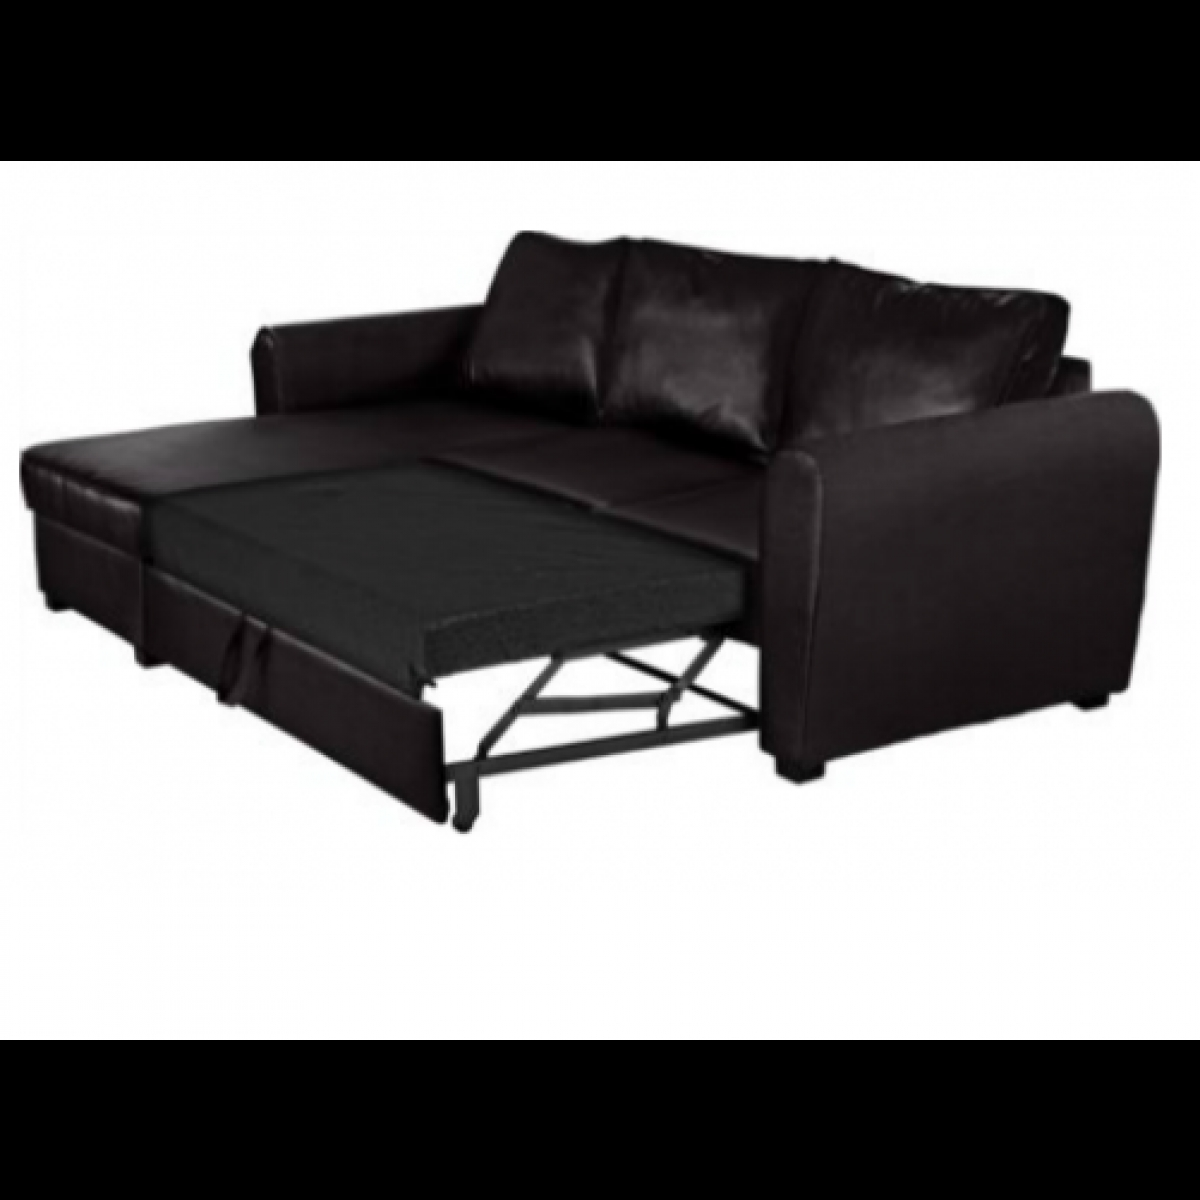 New Siena Fabric Corner Sofa Bed With Storage Charcoal With Regard To Fabric Corner Sofa Bed (Image 13 of 15)